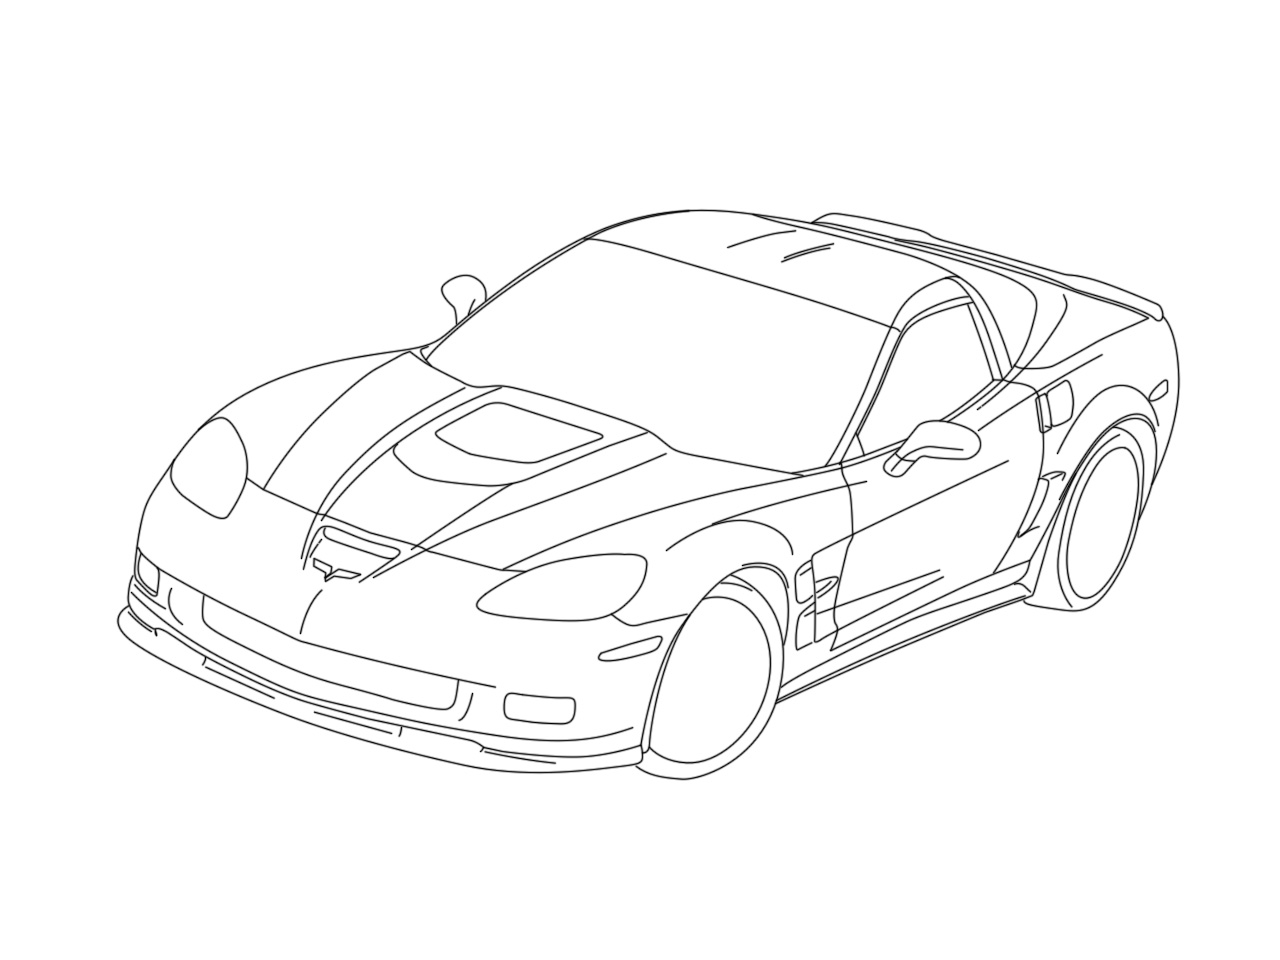 Porsche Line Drawing at GetDrawings.com | Free for personal use ...